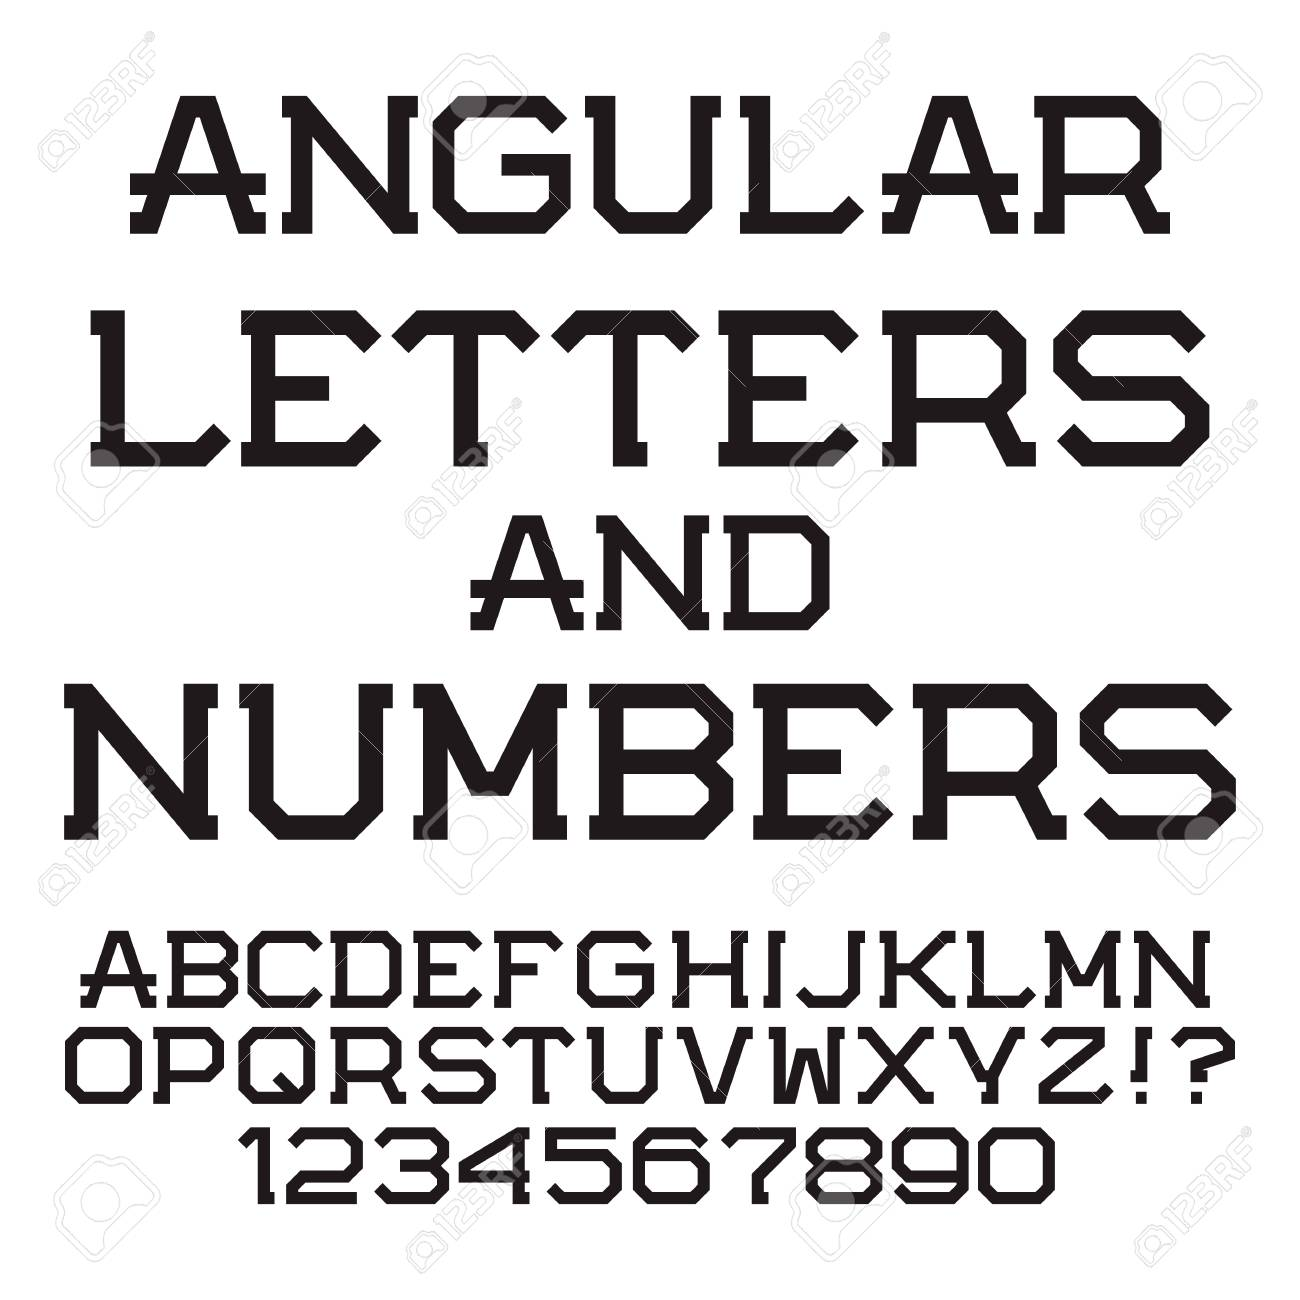 Black Angular Letters And Numbers Stylish Font Isolated Latin Alphabet With Figures Stock